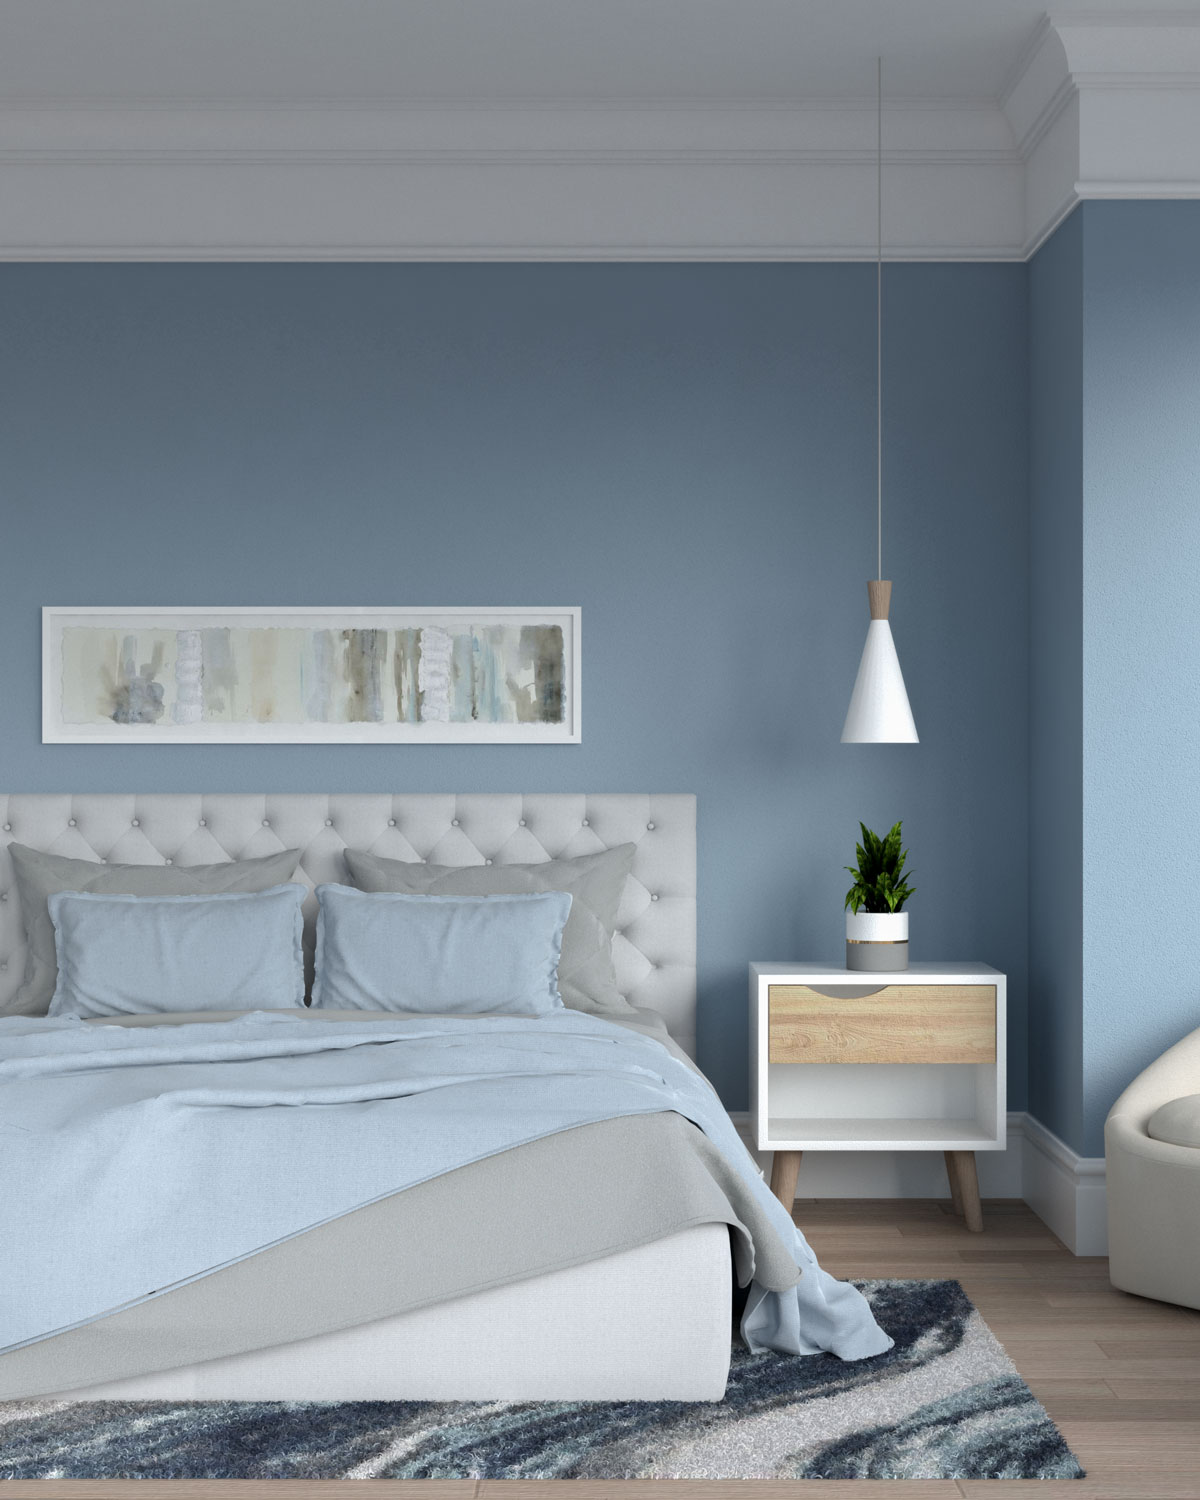 Blue and gray bedding in blue bedroom